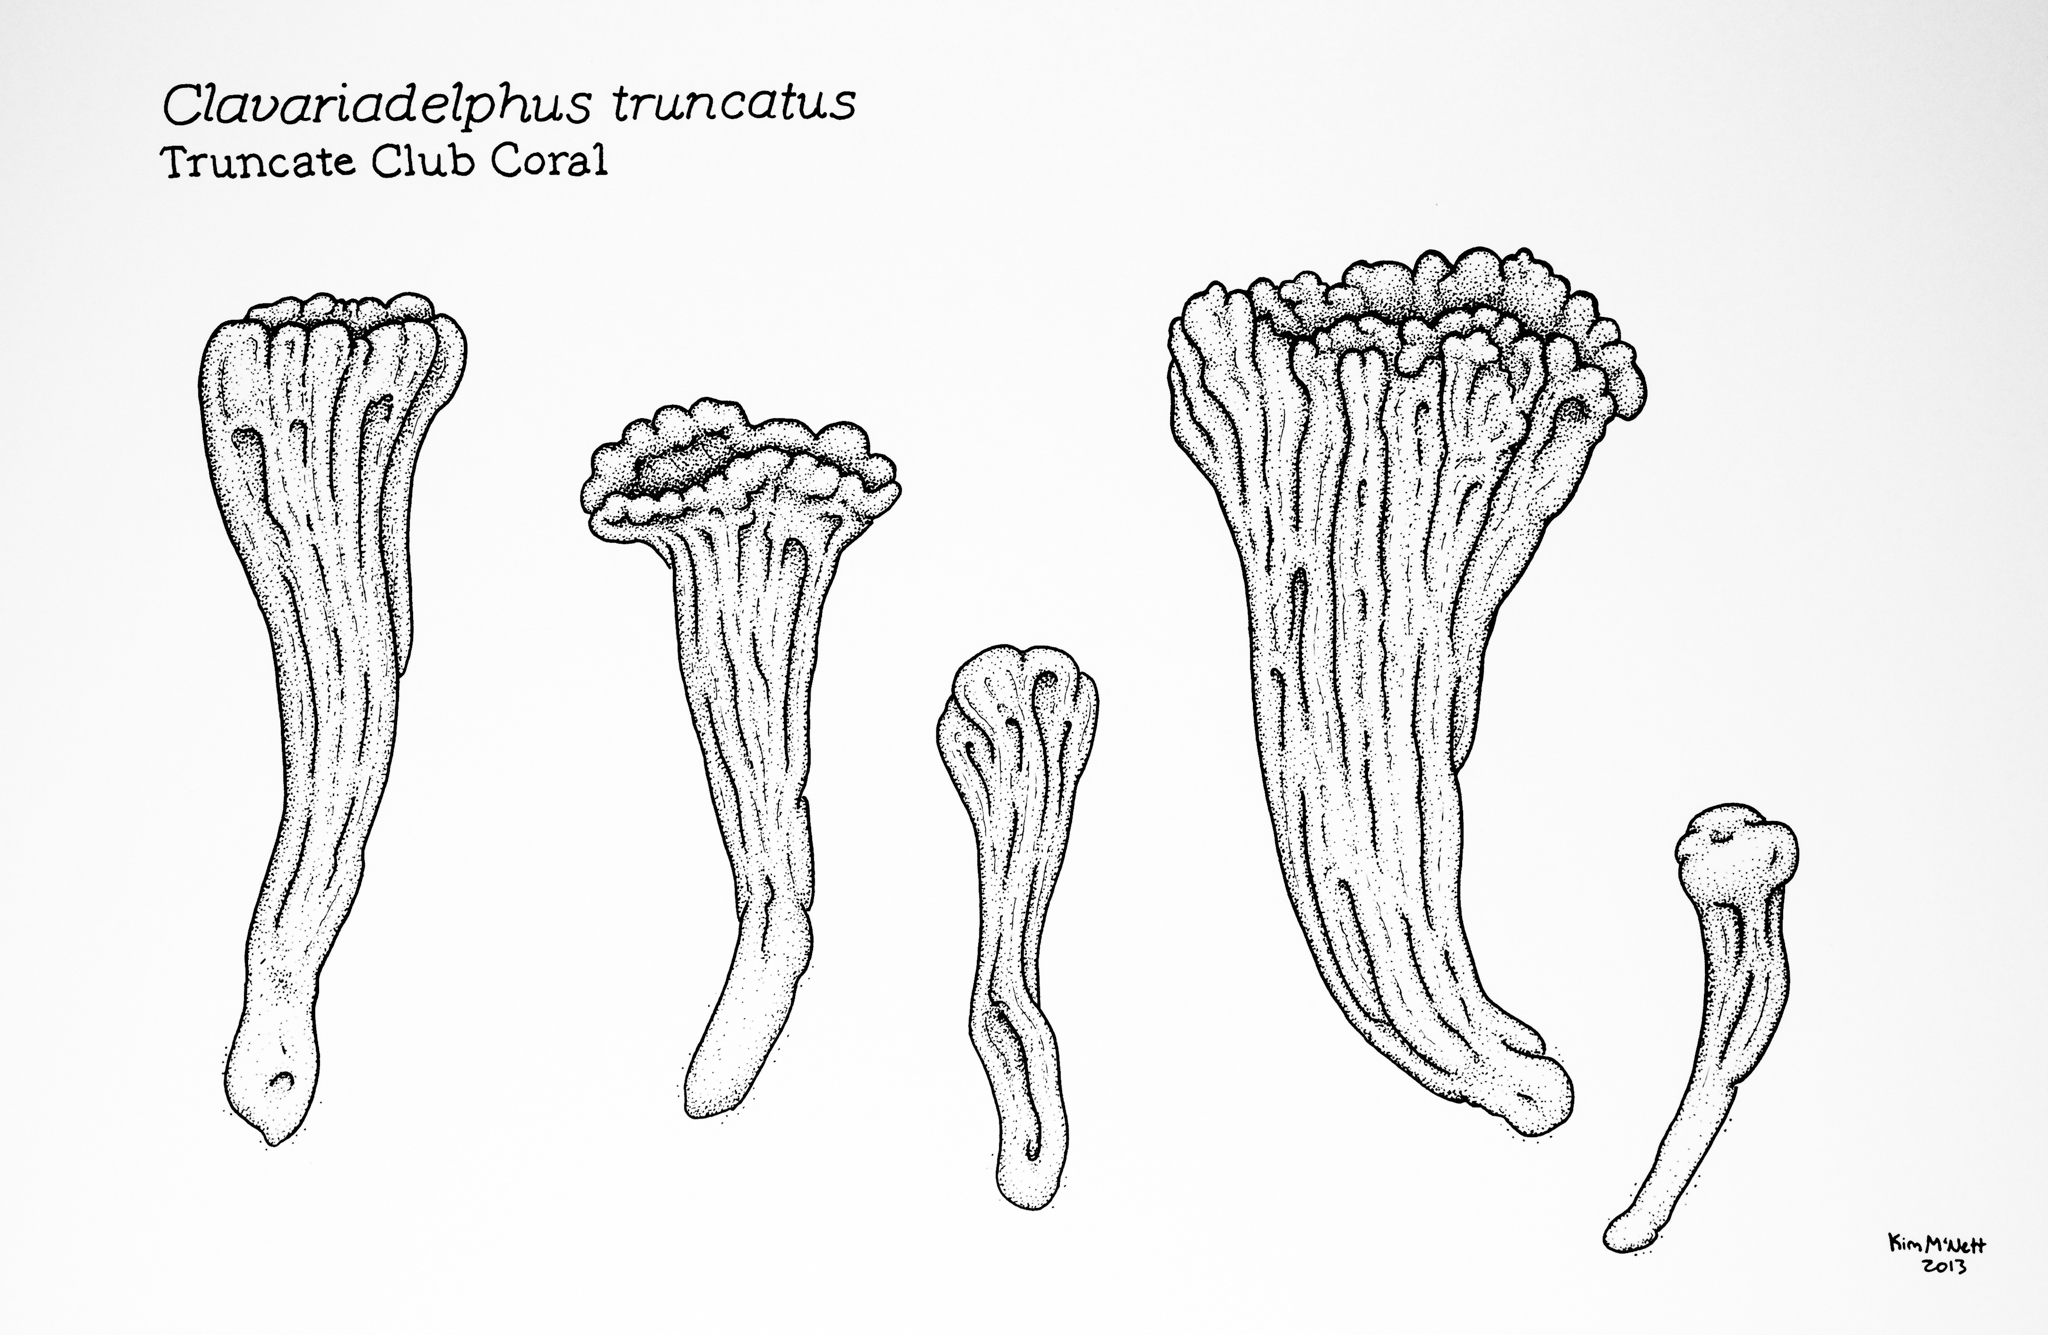 Truncate Club Coral Clavariadelphus truncatus drawing